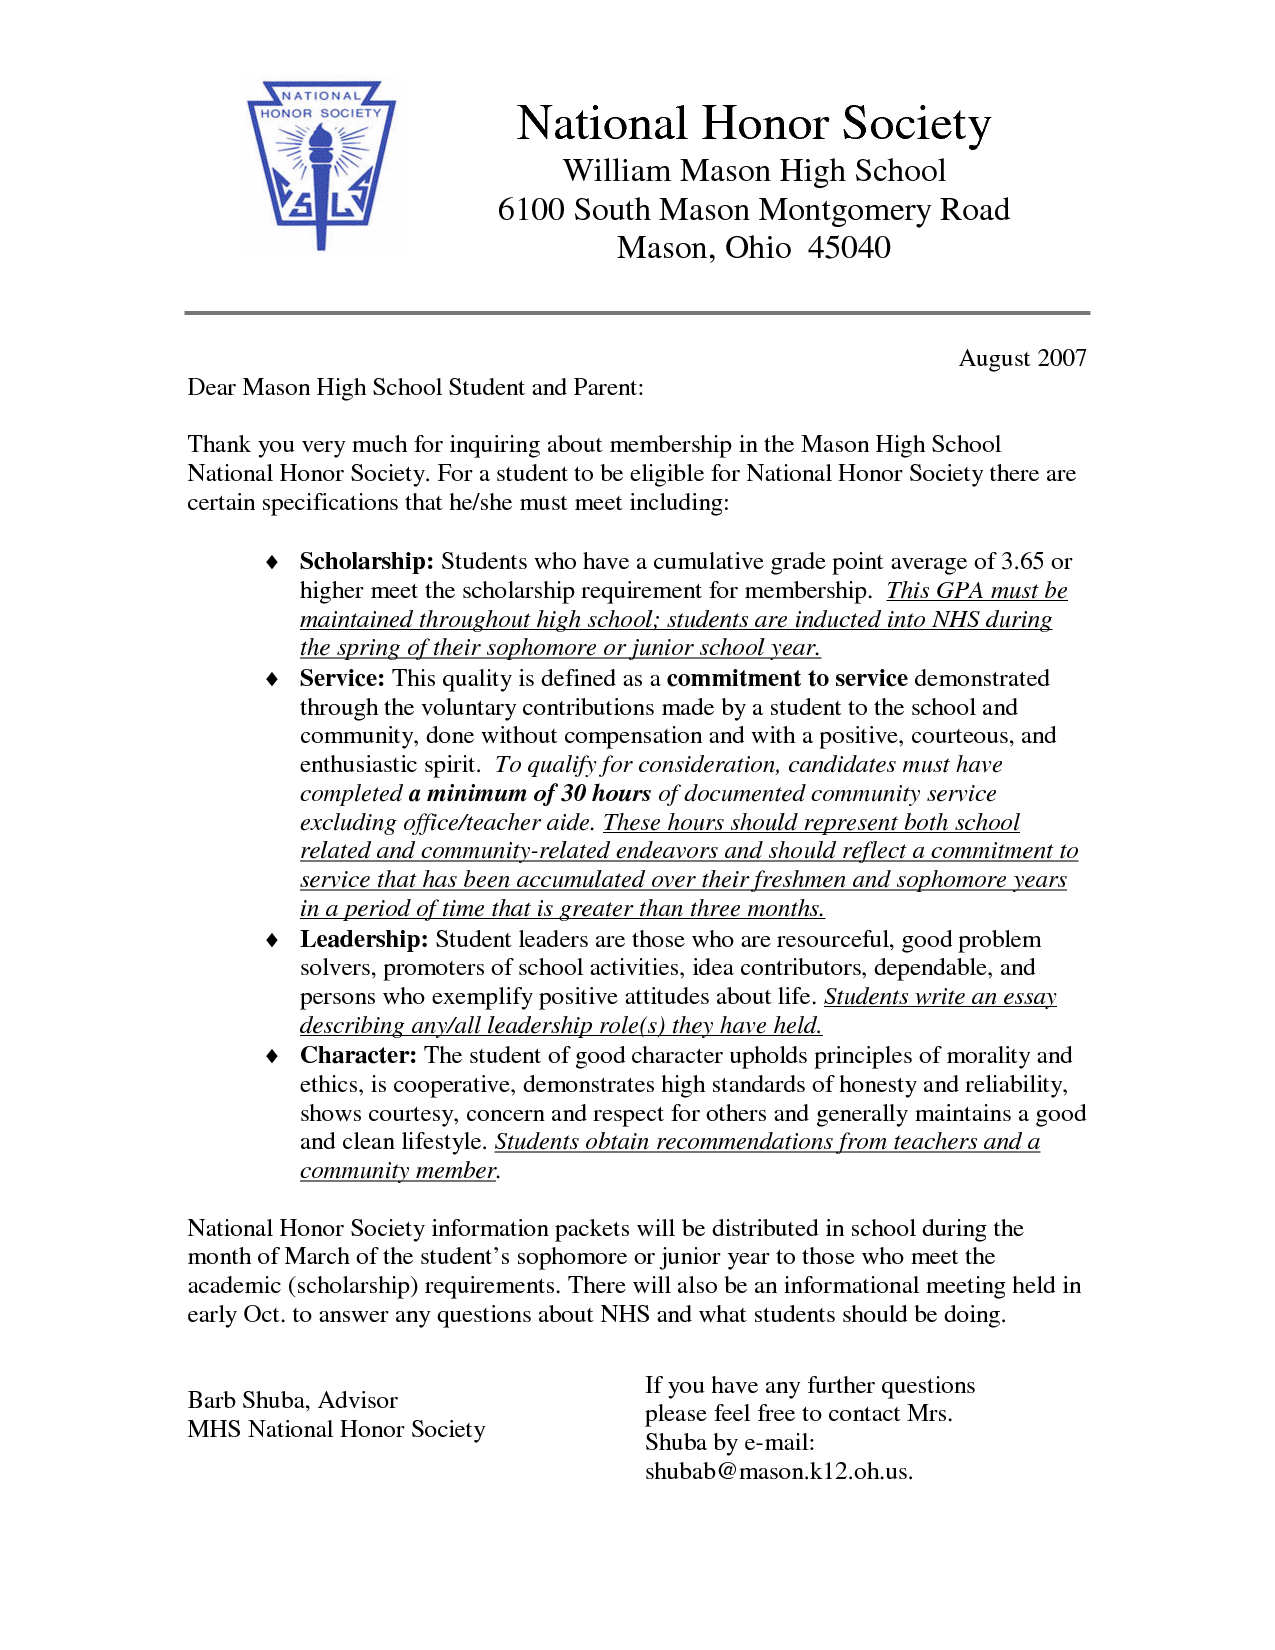 How to Write an Attractive National Junior Honor Society Essay